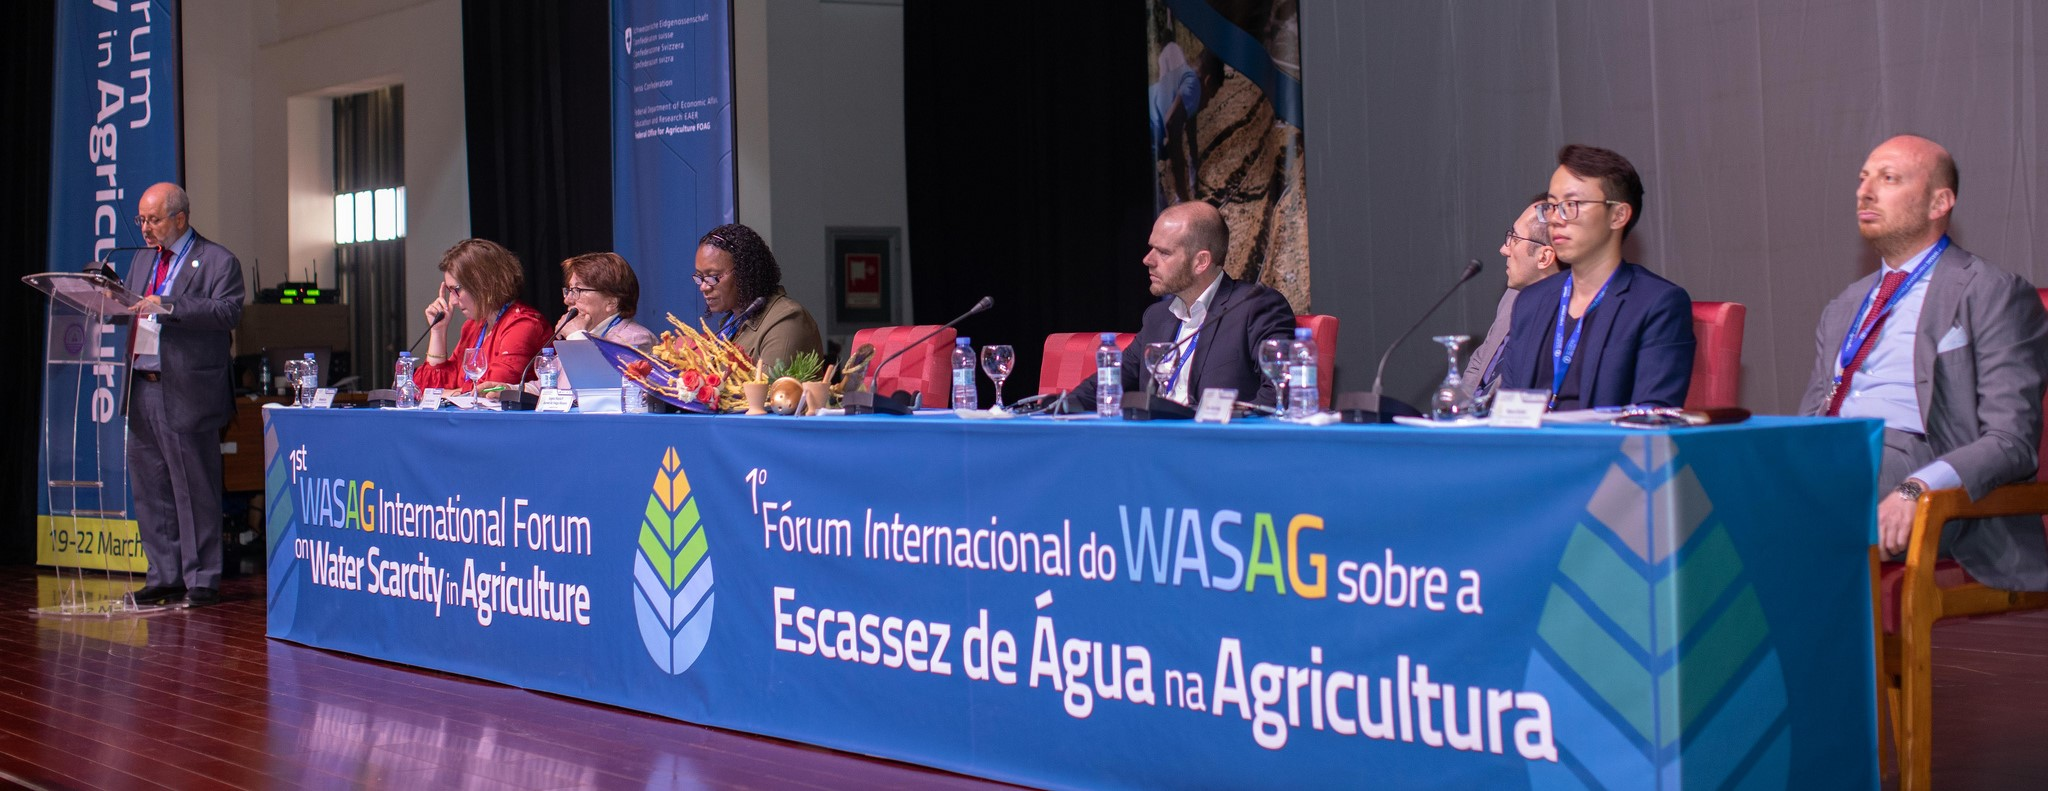 "Impression of the ""saline agriculture"" session with Dr. Arjen de Vos (sitting 4th from left)"